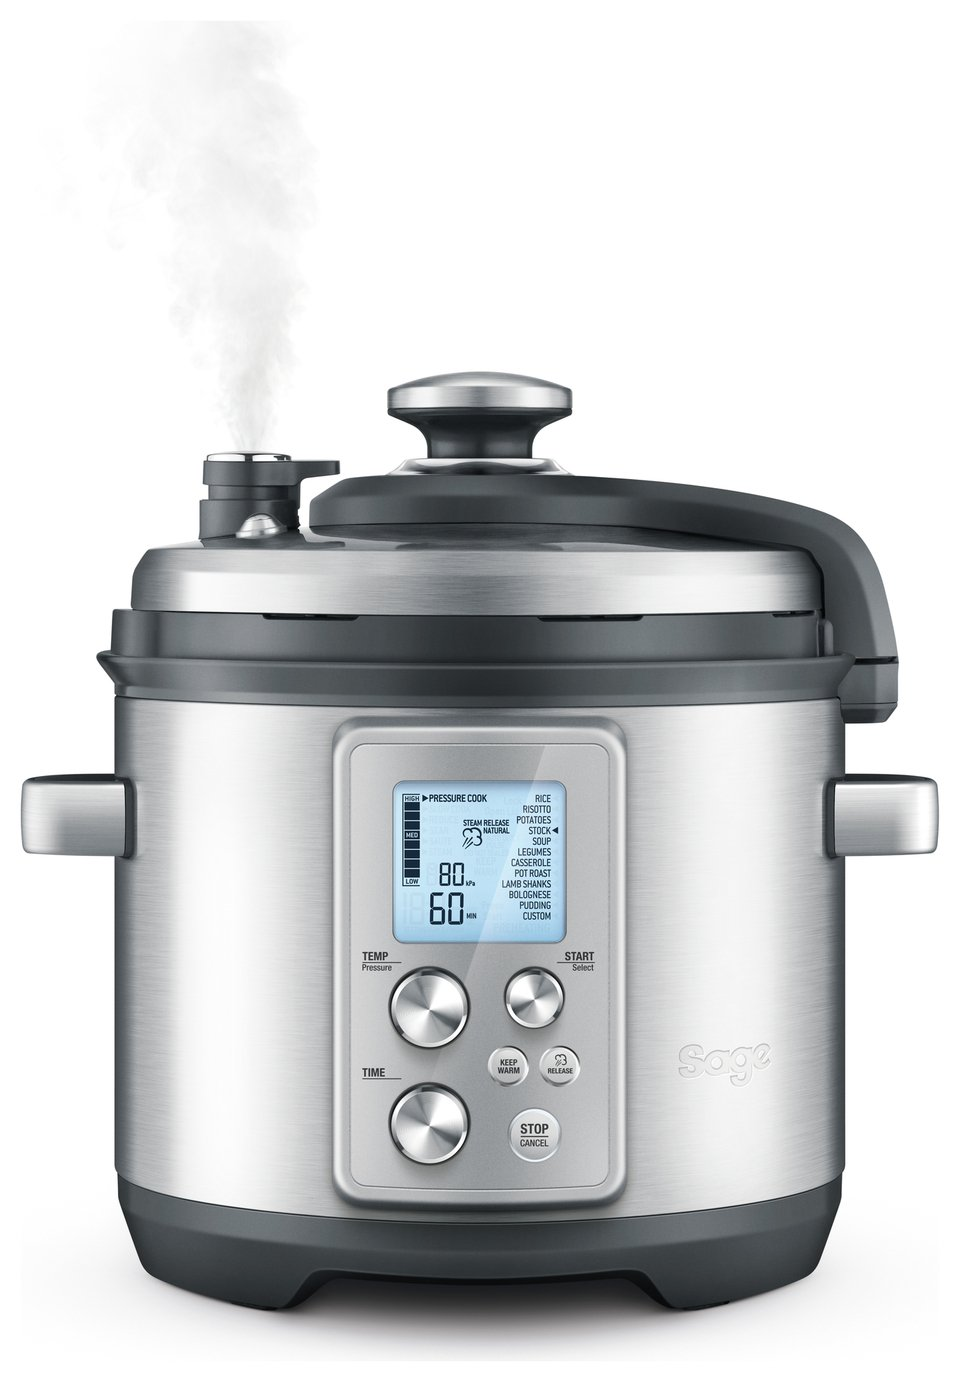 Sage The Fast Slow 11-in-1 6L Pro Pressure / Slow Cooker